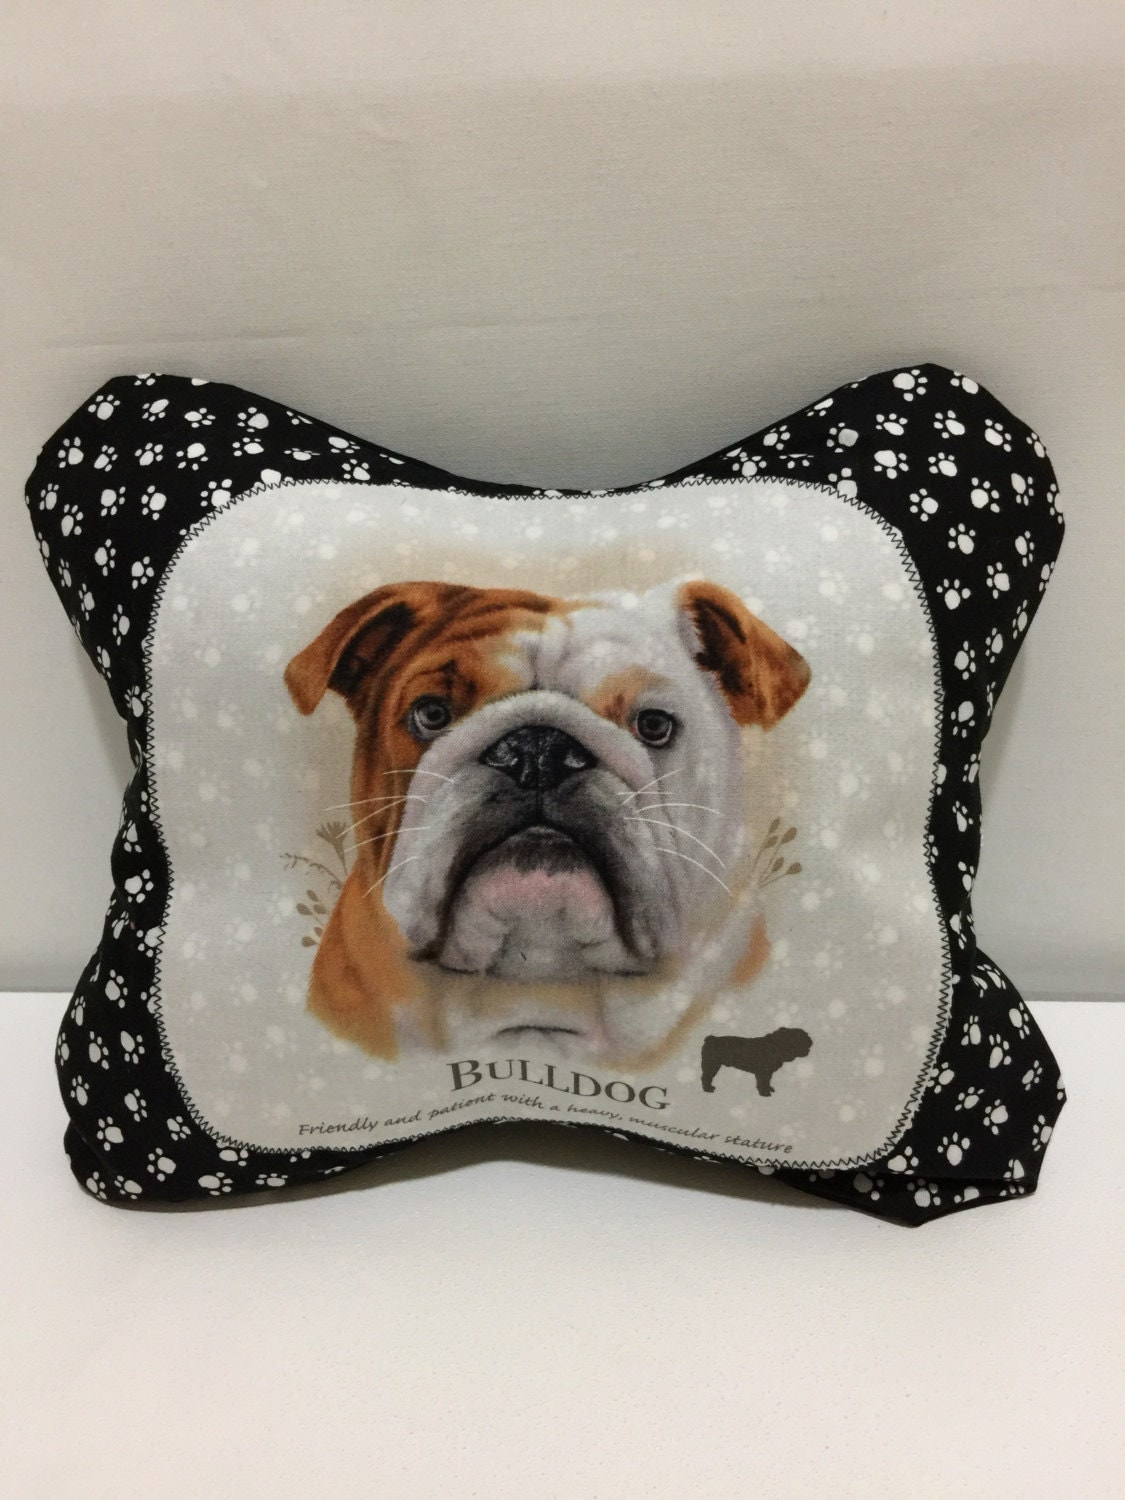 Decorative Pillow With Dog : Dog pillows Car Seat Headrest Decorative Pillows